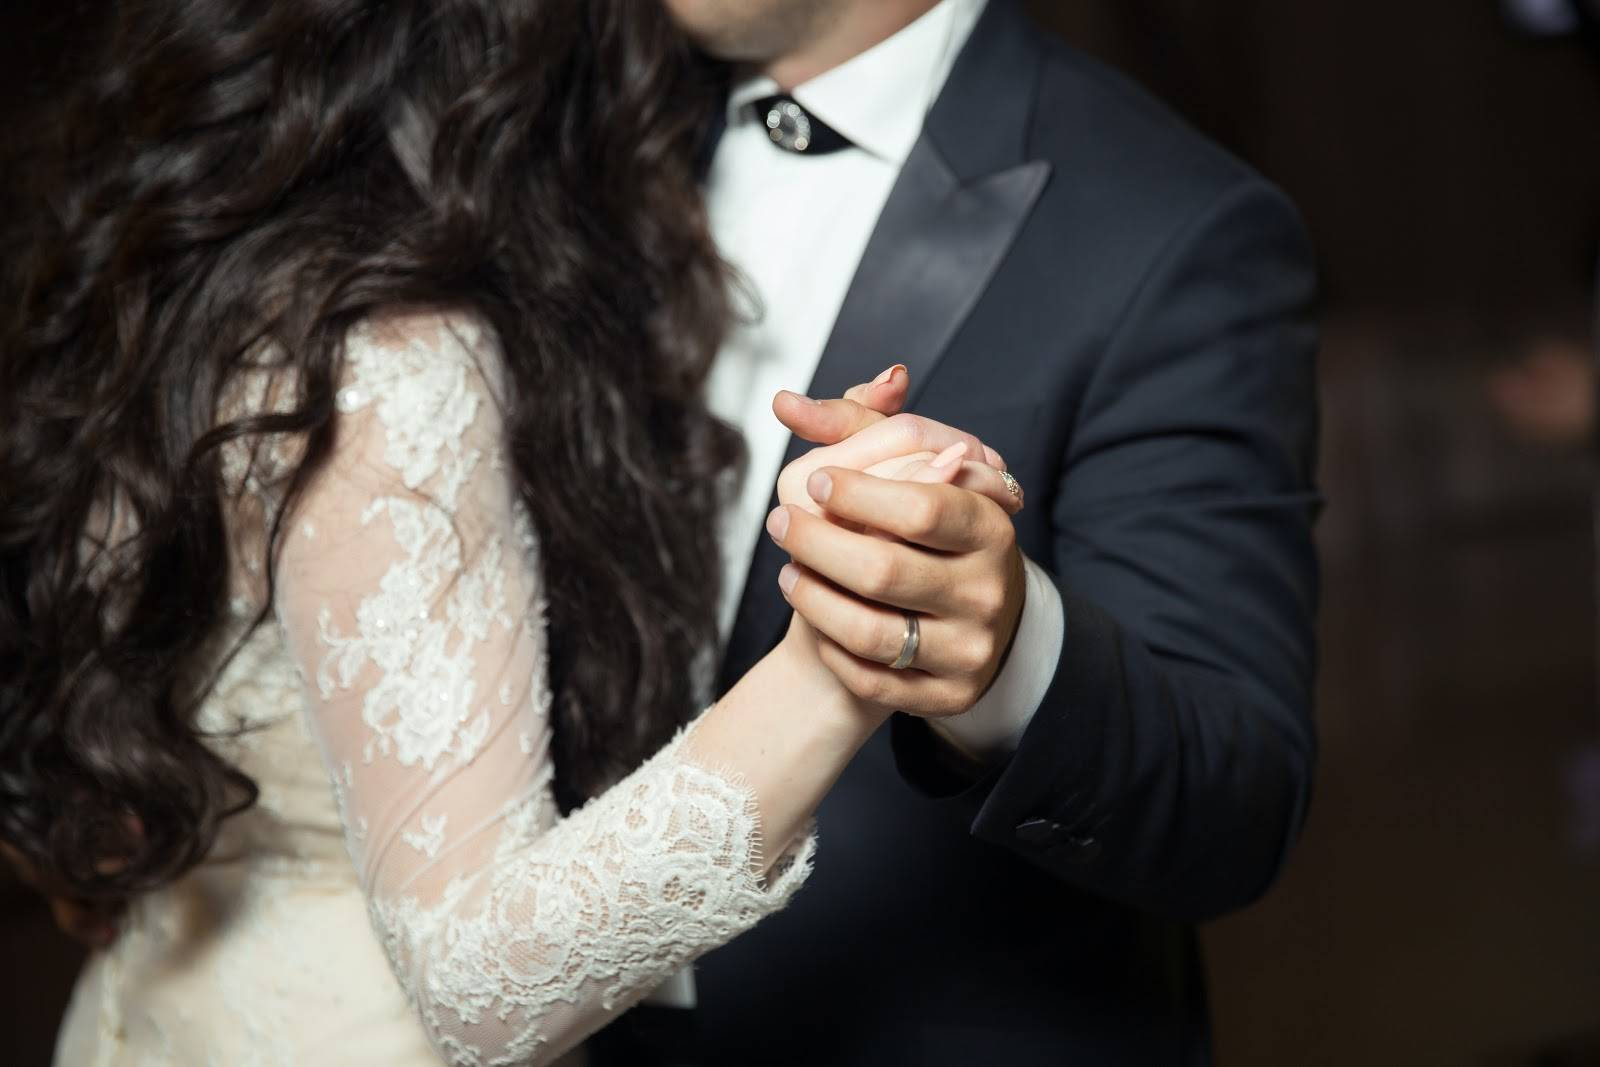 Winter Weddings In COVID — How to Stay Warm and Safe